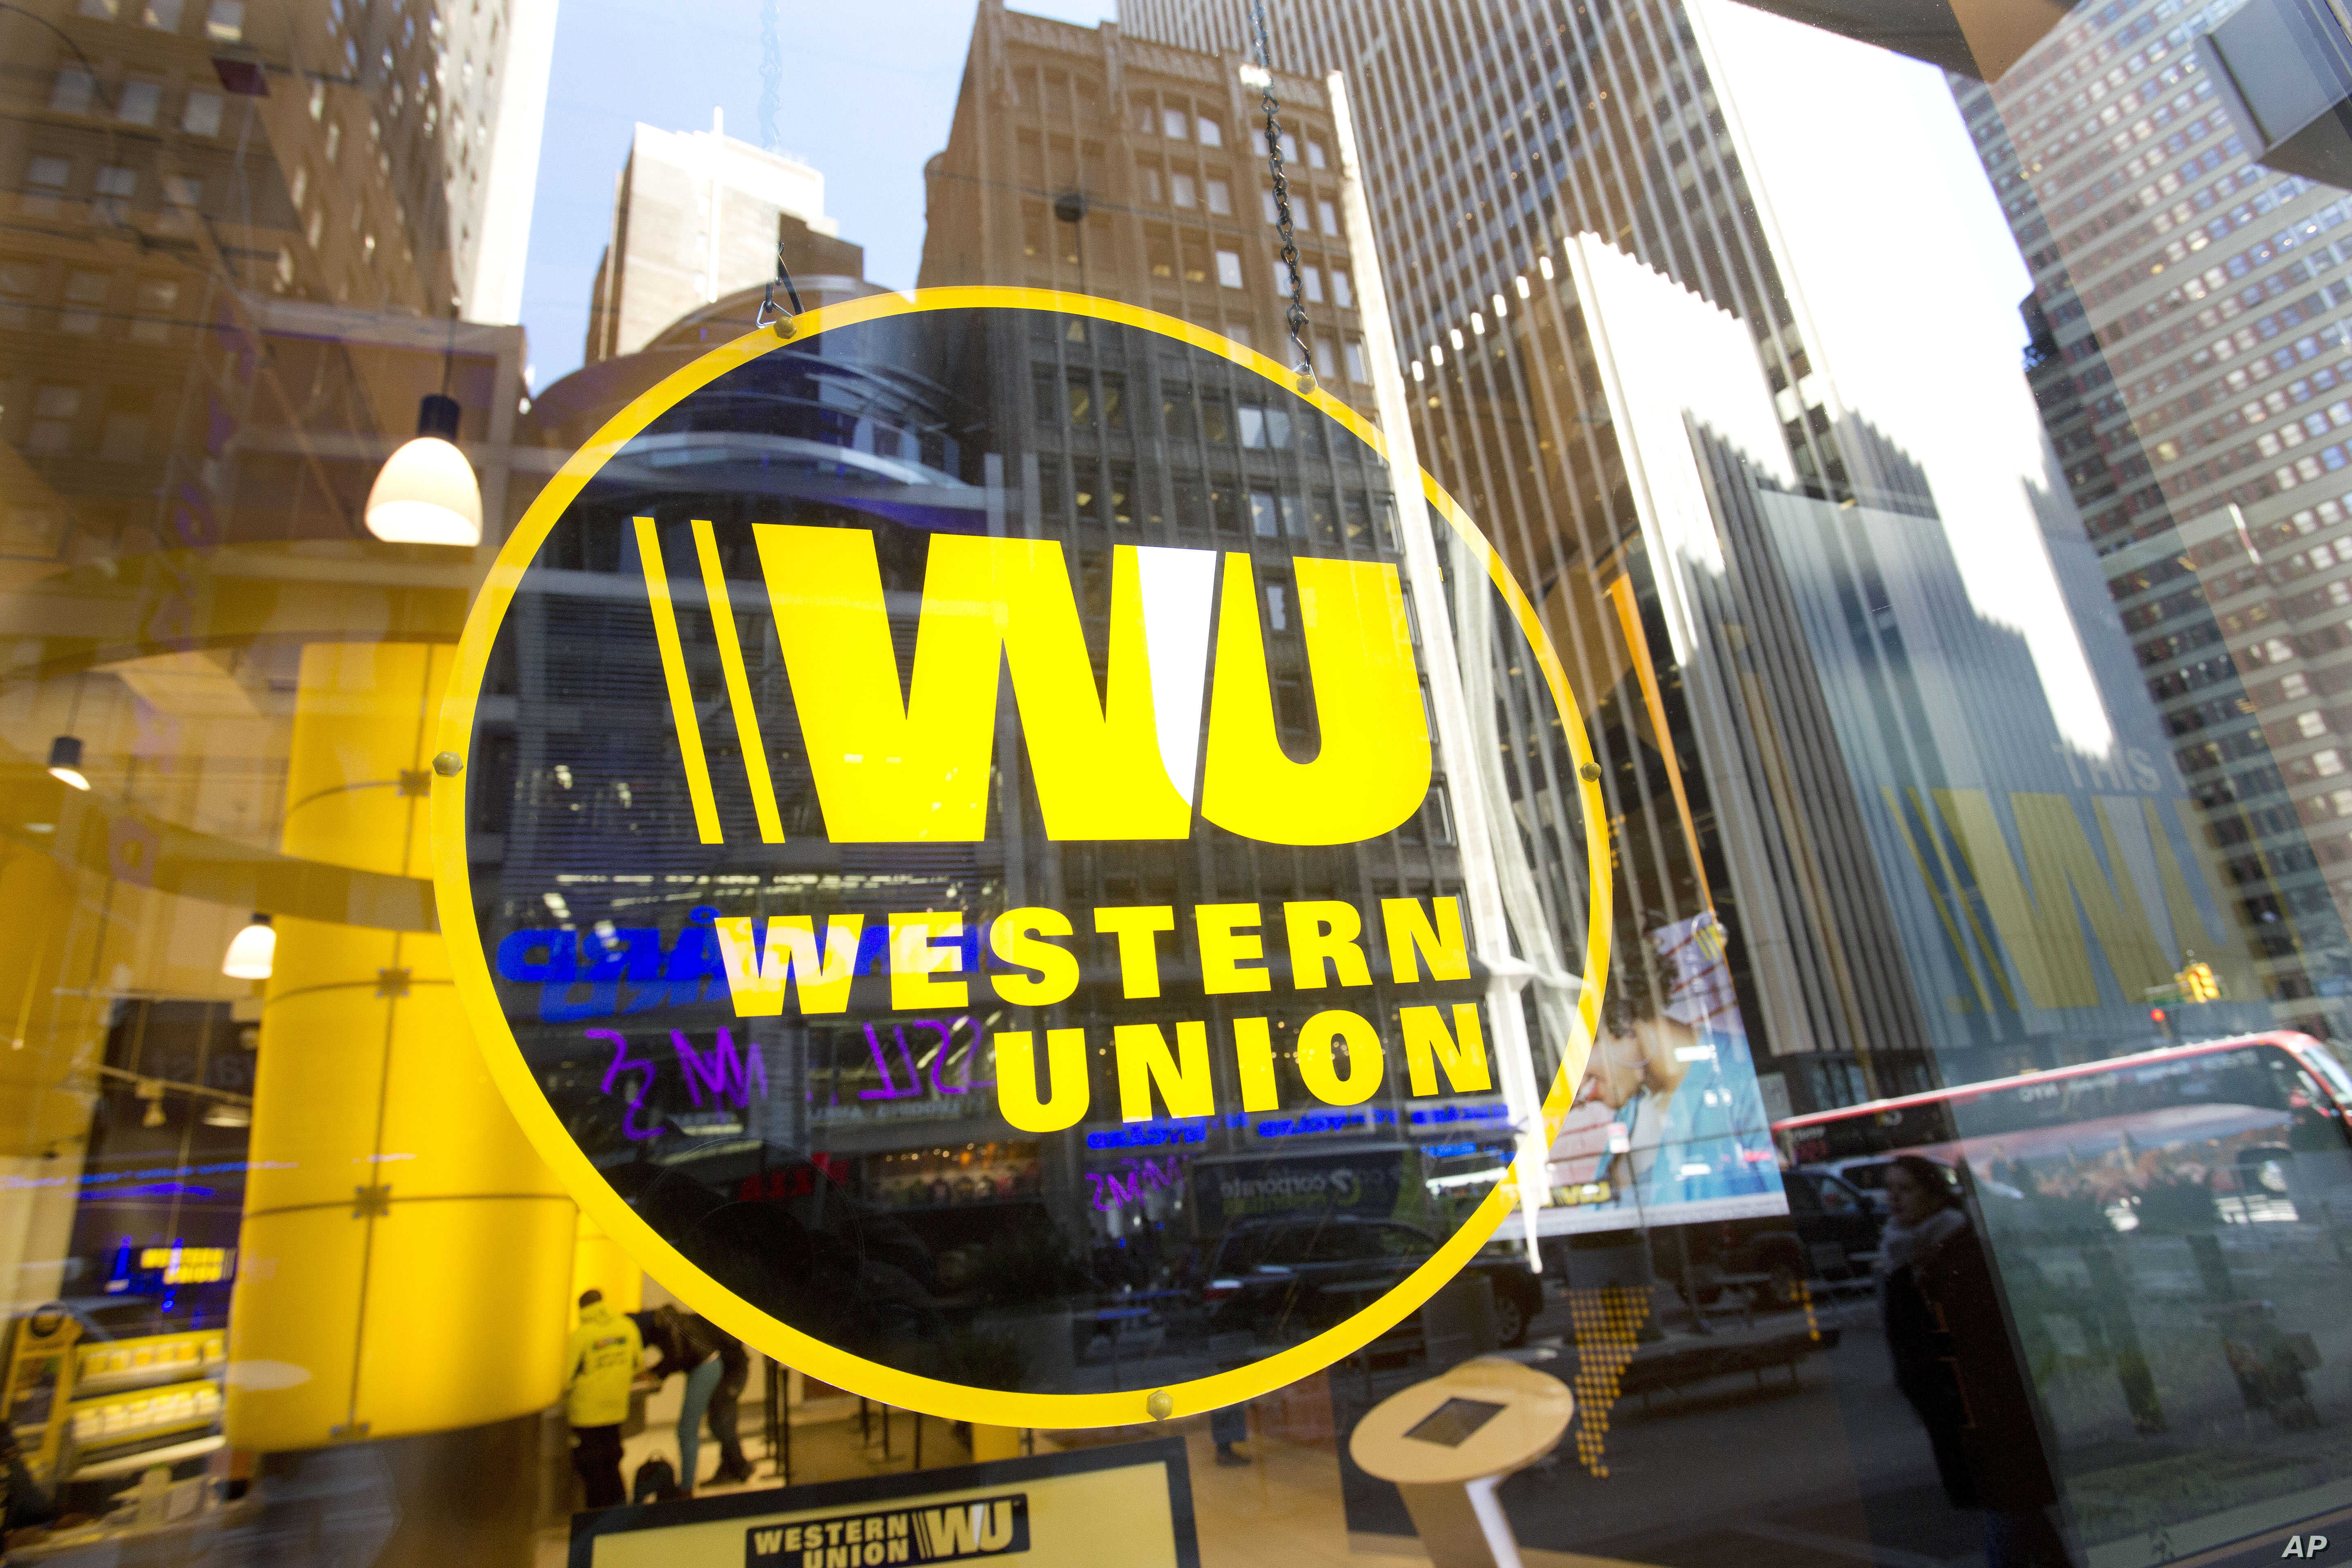 A Western Union store in New York, April 5, 2016.  in New York. Late last year the Burma Campaign UK pressure group published a list of 49 foreign companies it said were doing business with the military or implicated in rights abuses in Myanmar.